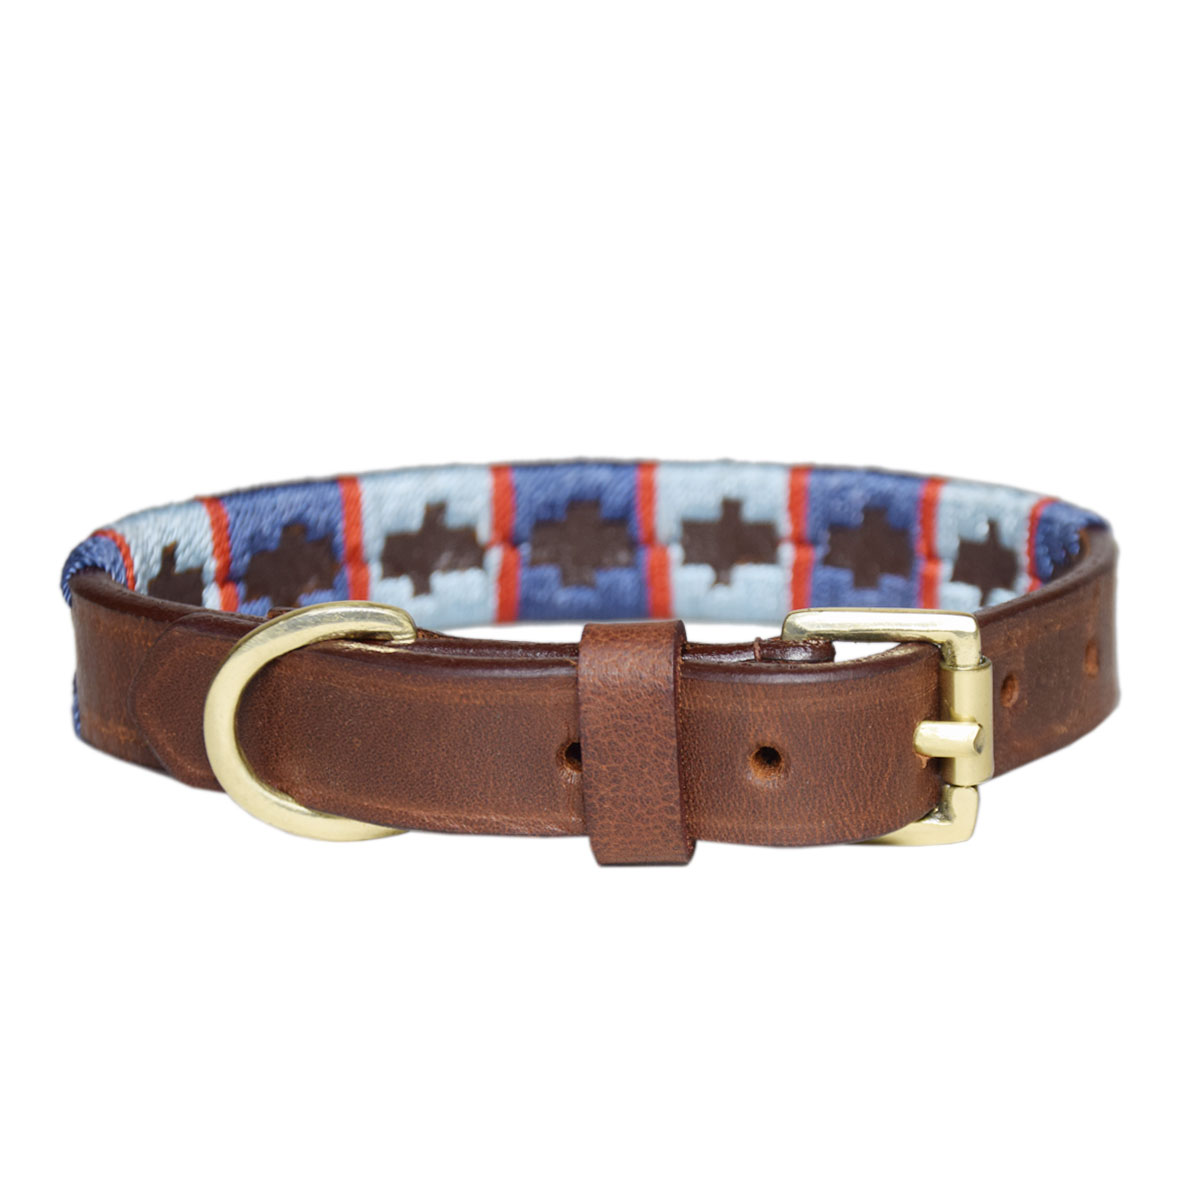 BROWN PET POLO COLLAR BELT FOR PETS 8MM